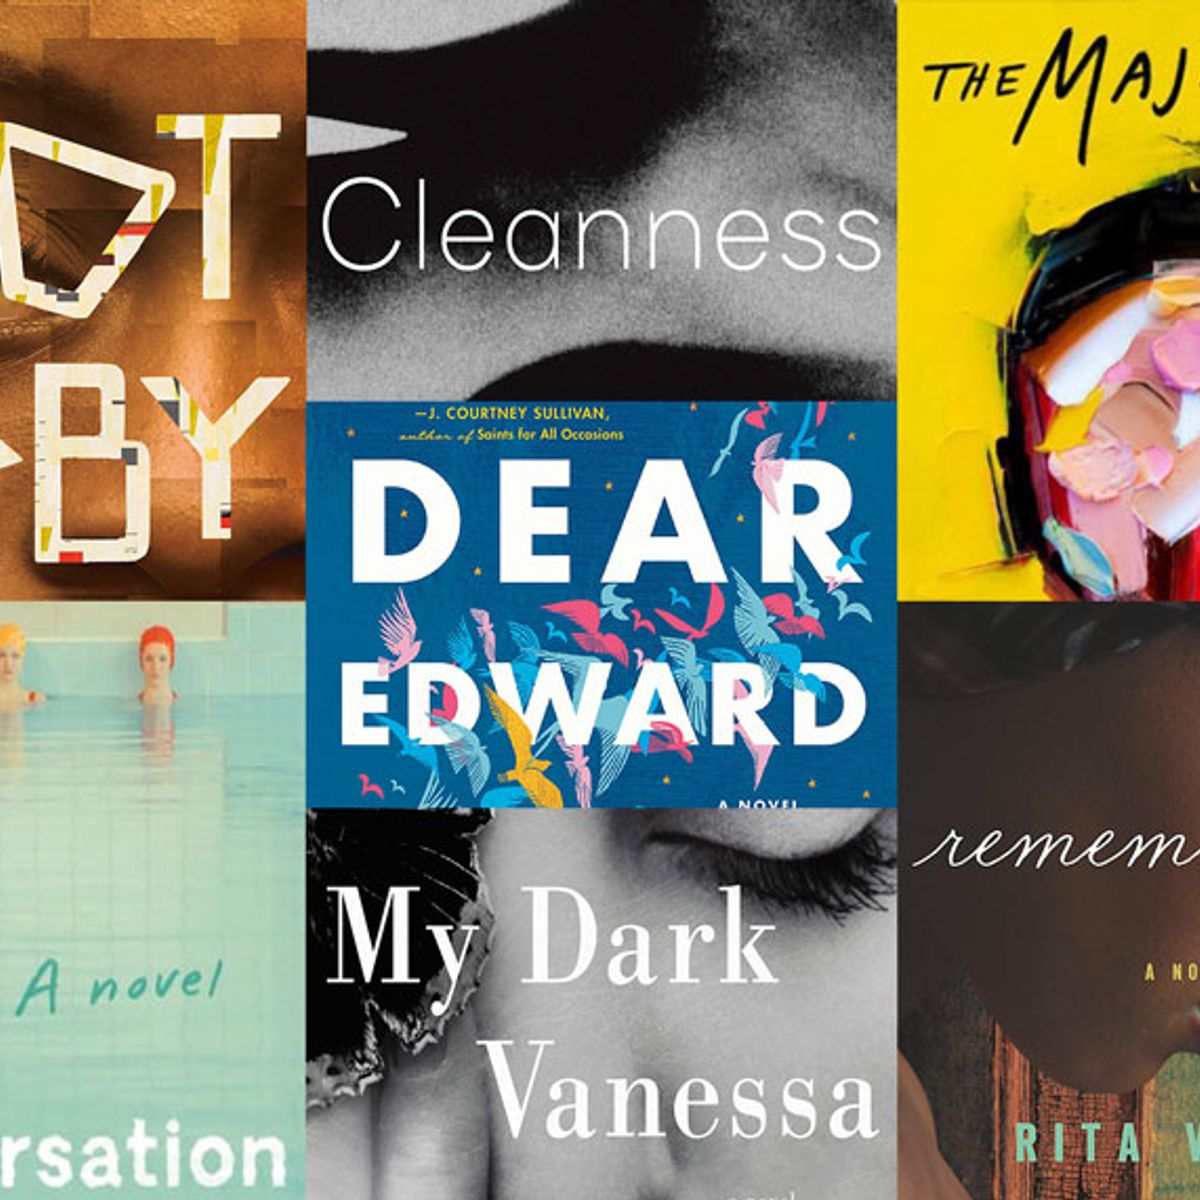 7 must-read novels to kick off 2020 right